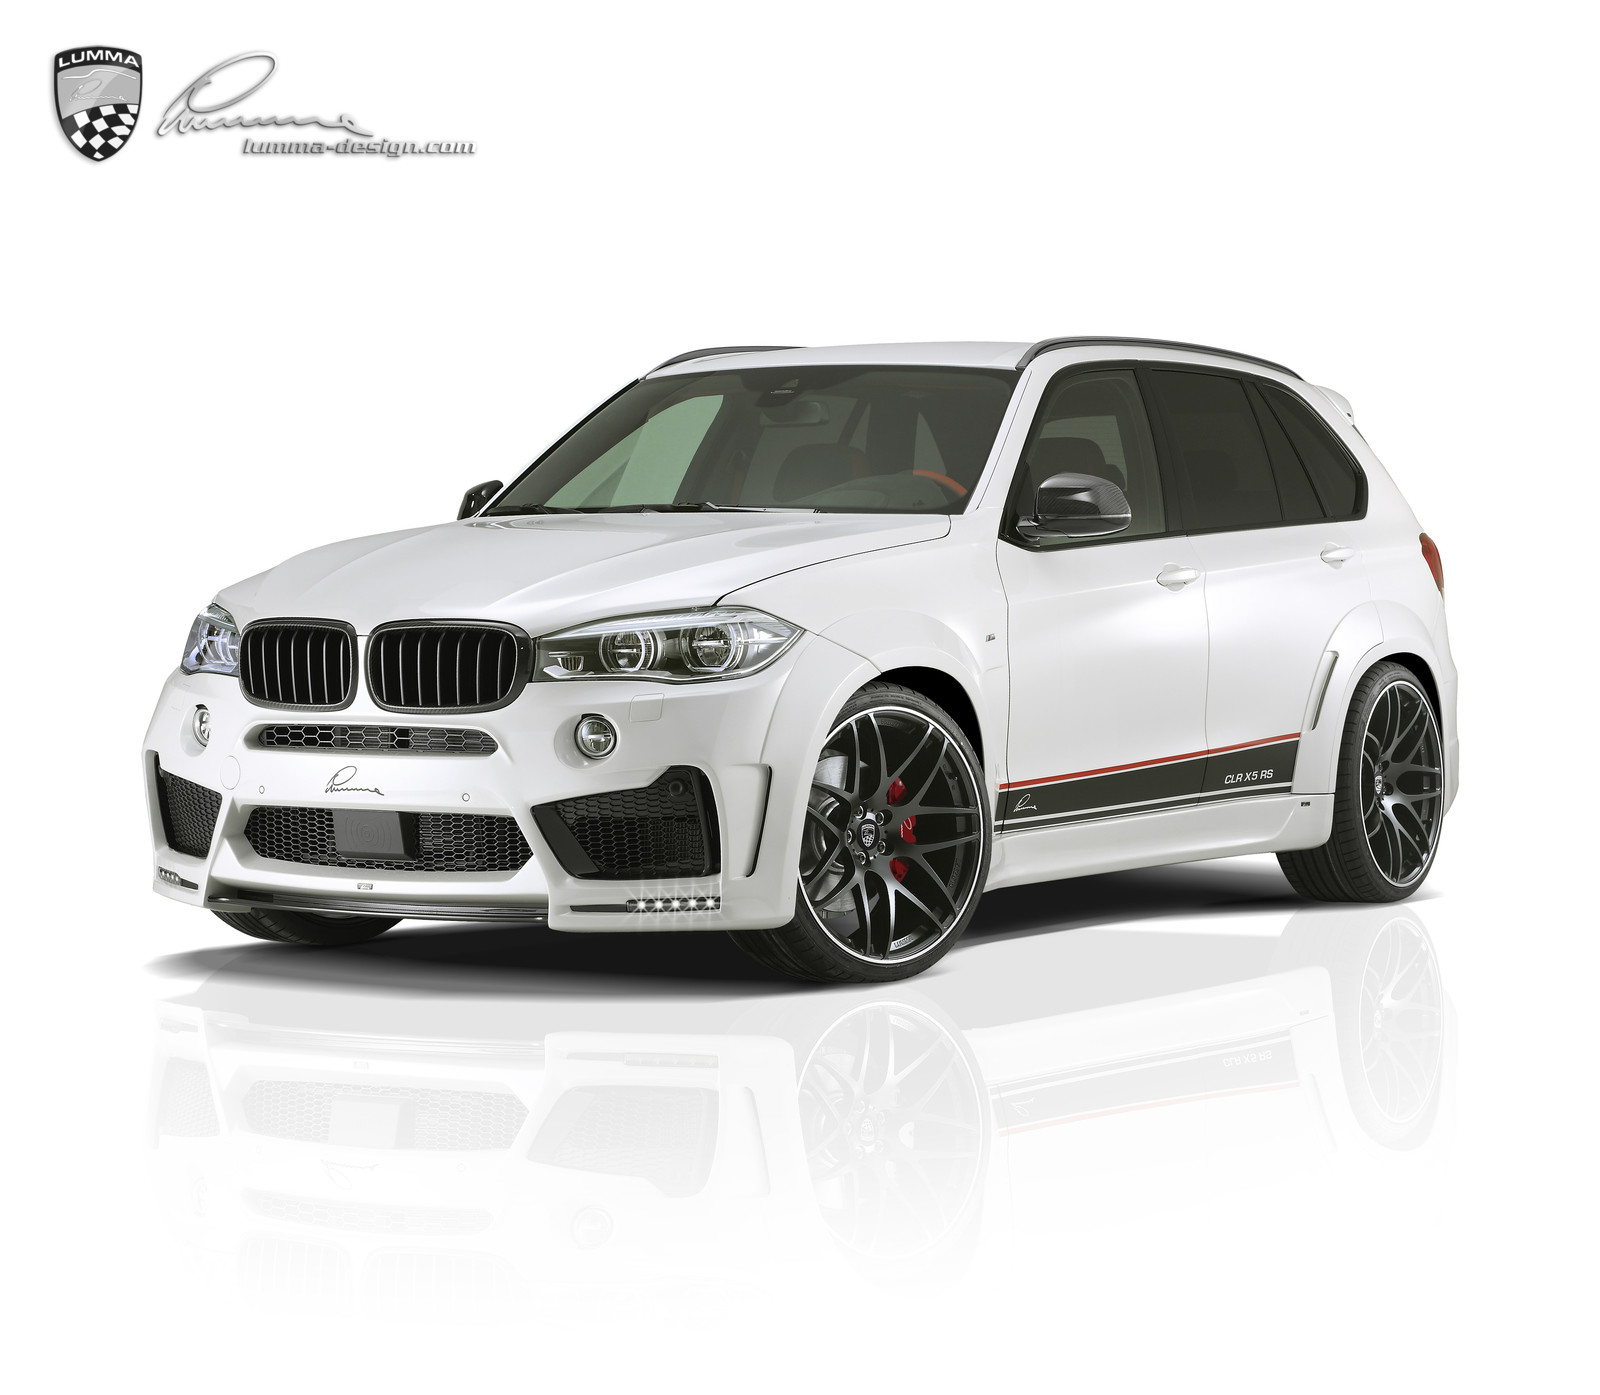 LUMMA-NEWS: Award For LUMMA CLR X 5 RS